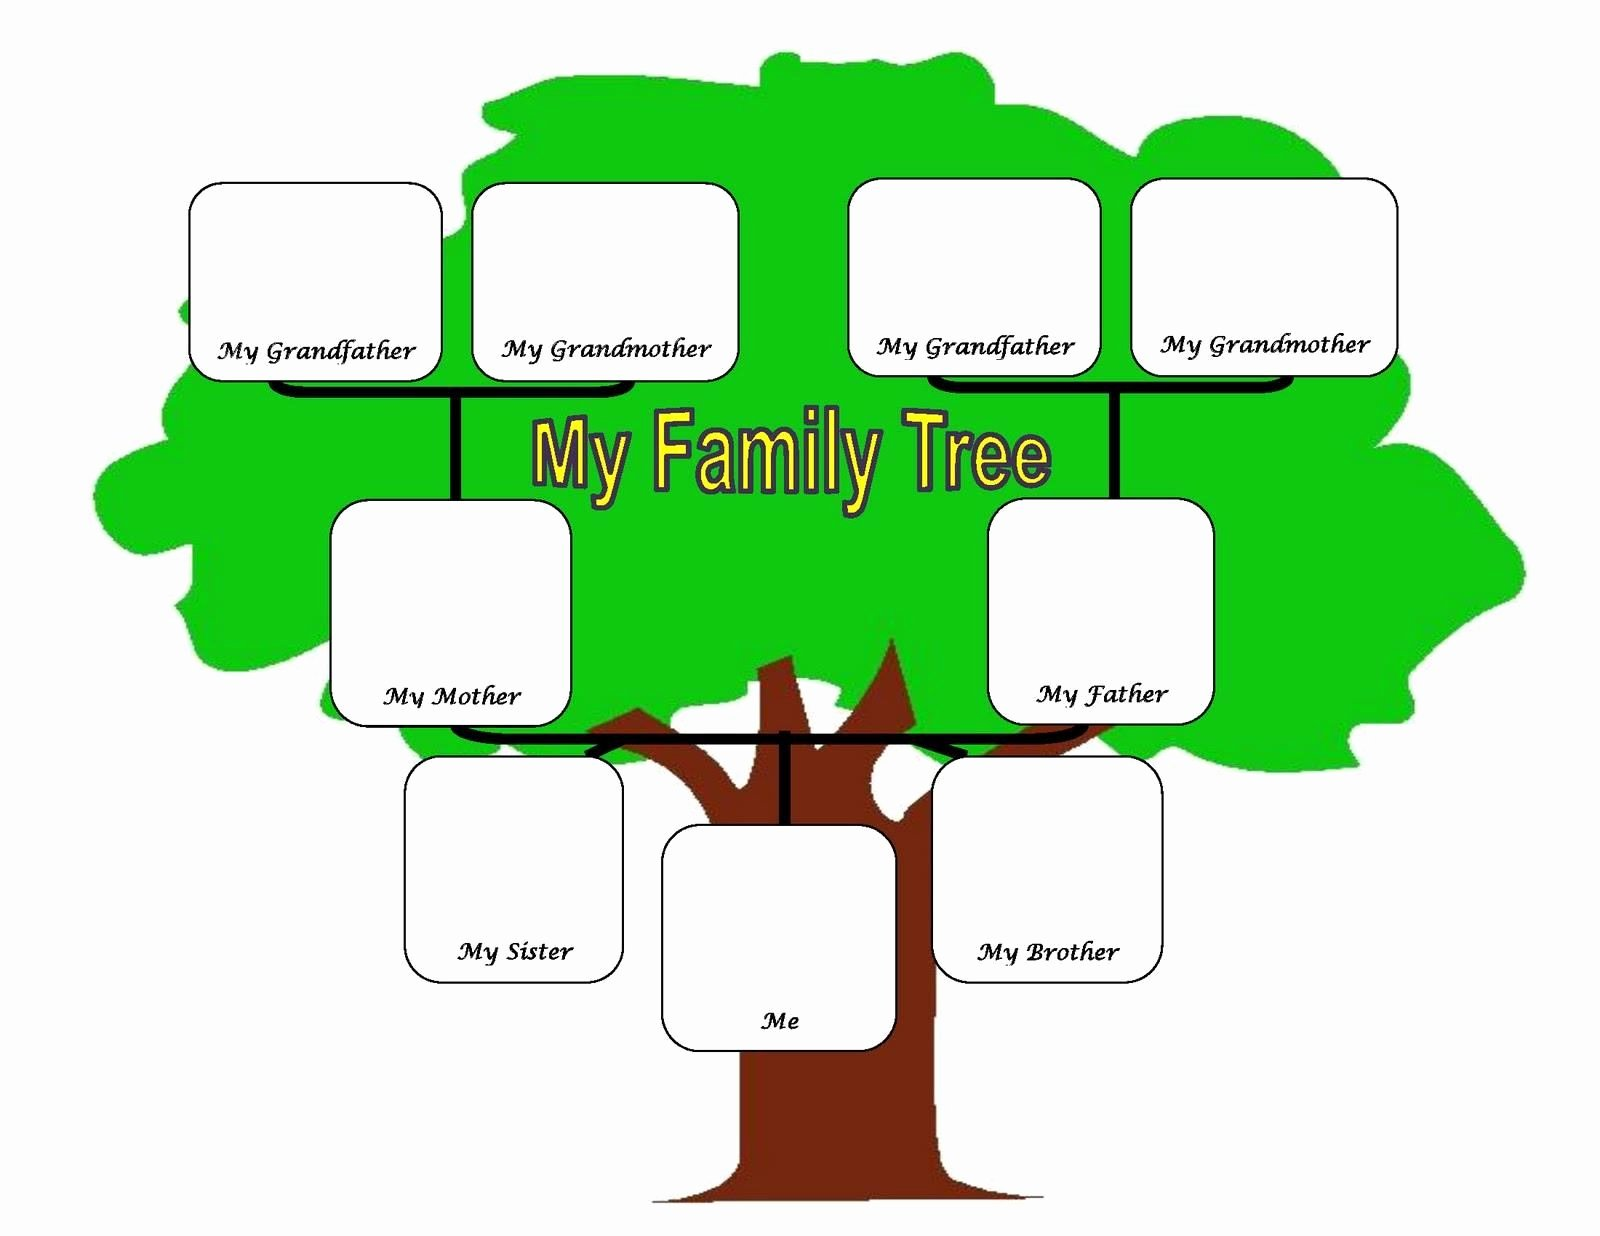 Family Tree Examples Images Inspirational Family Tree Fotolip Rich Image and Wallpaper